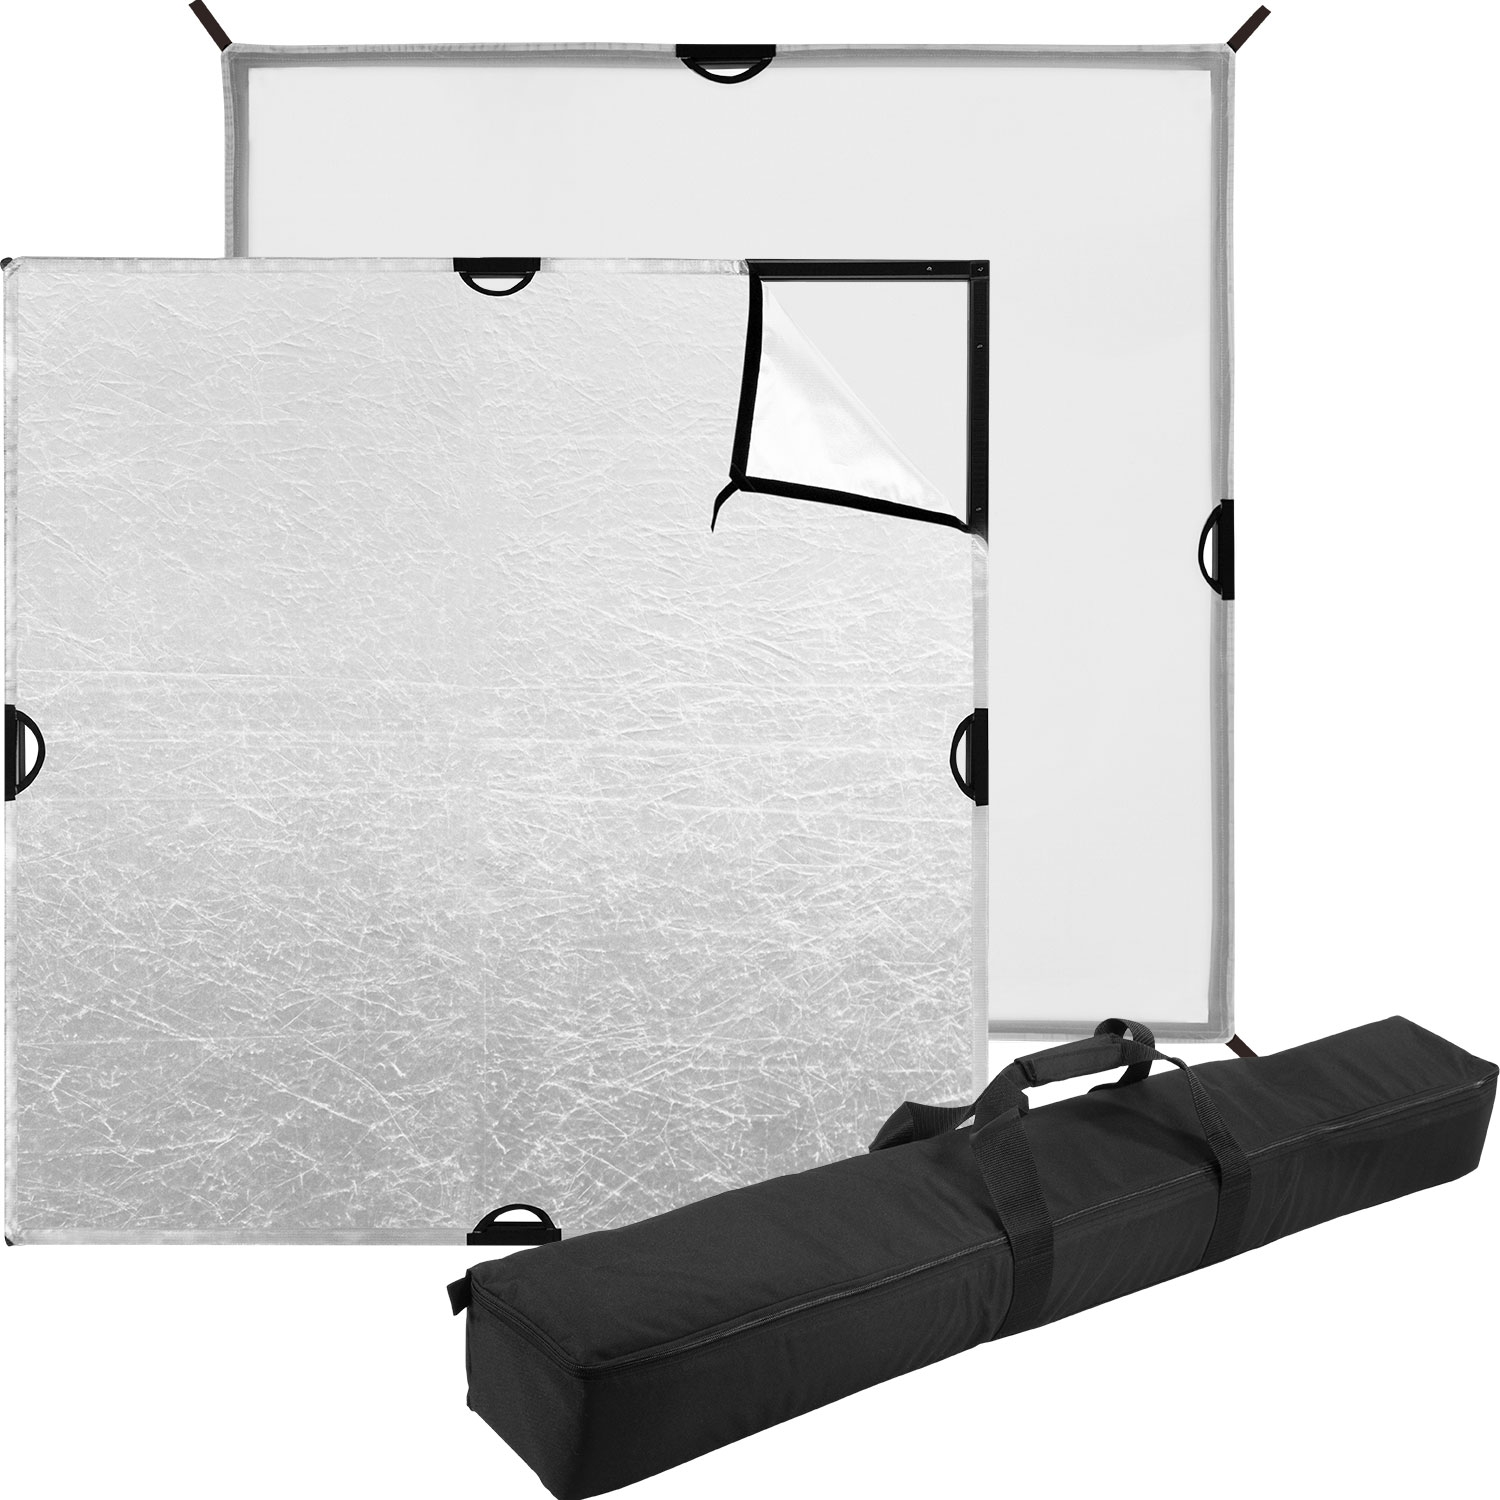 Scrim Jim Cine Kit (4' x 4')